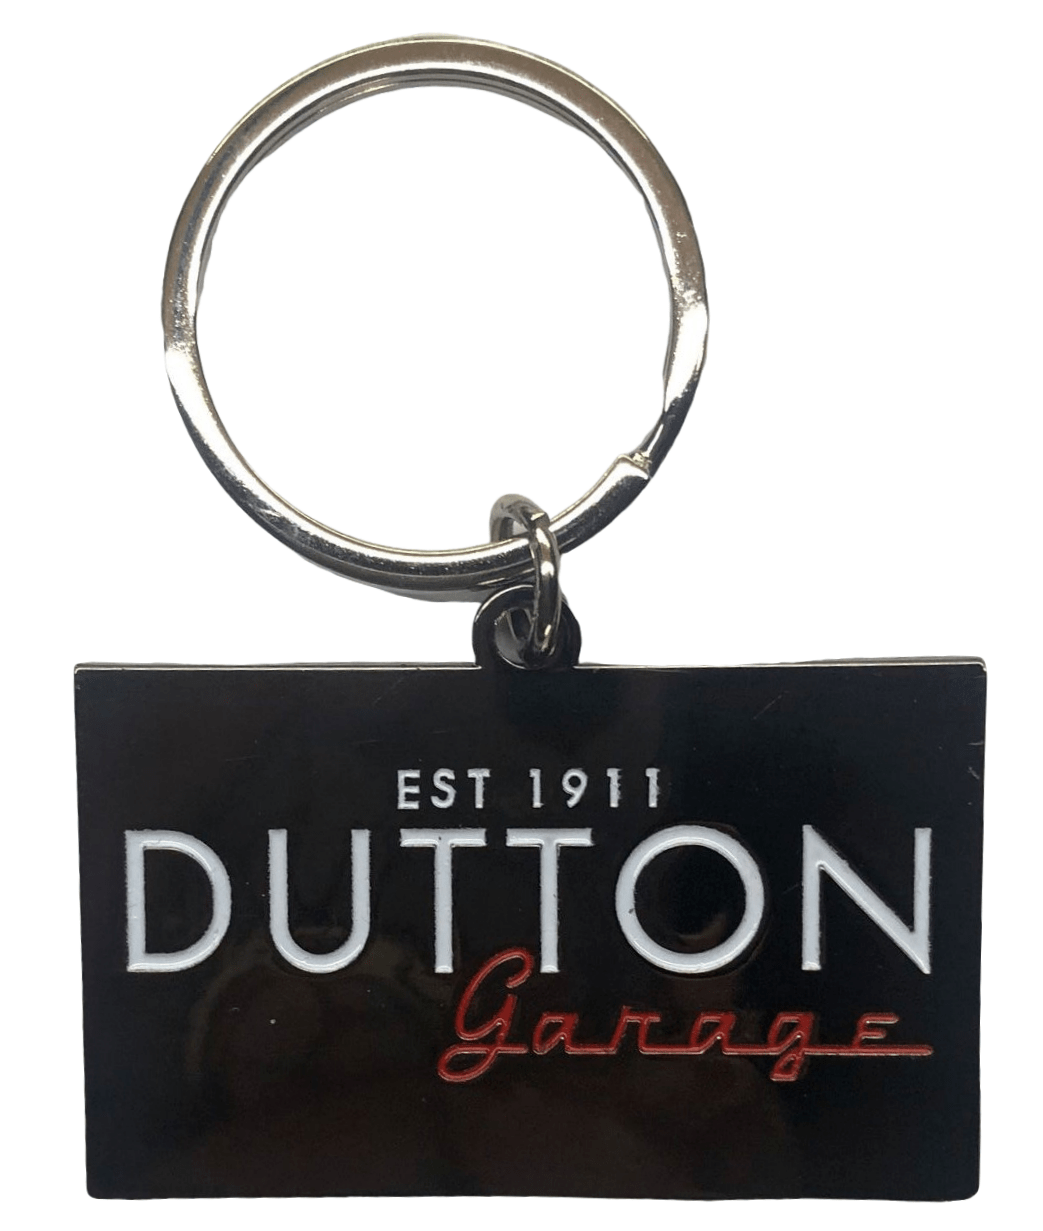 This is a rectangular custom metal keyring for a prestige and classic car retailer. The logo has been engraved into the metail with a printed colour infill. There is also a buffed shine finish on the front and back to form a high gloss effect and close match to the companies original logo.